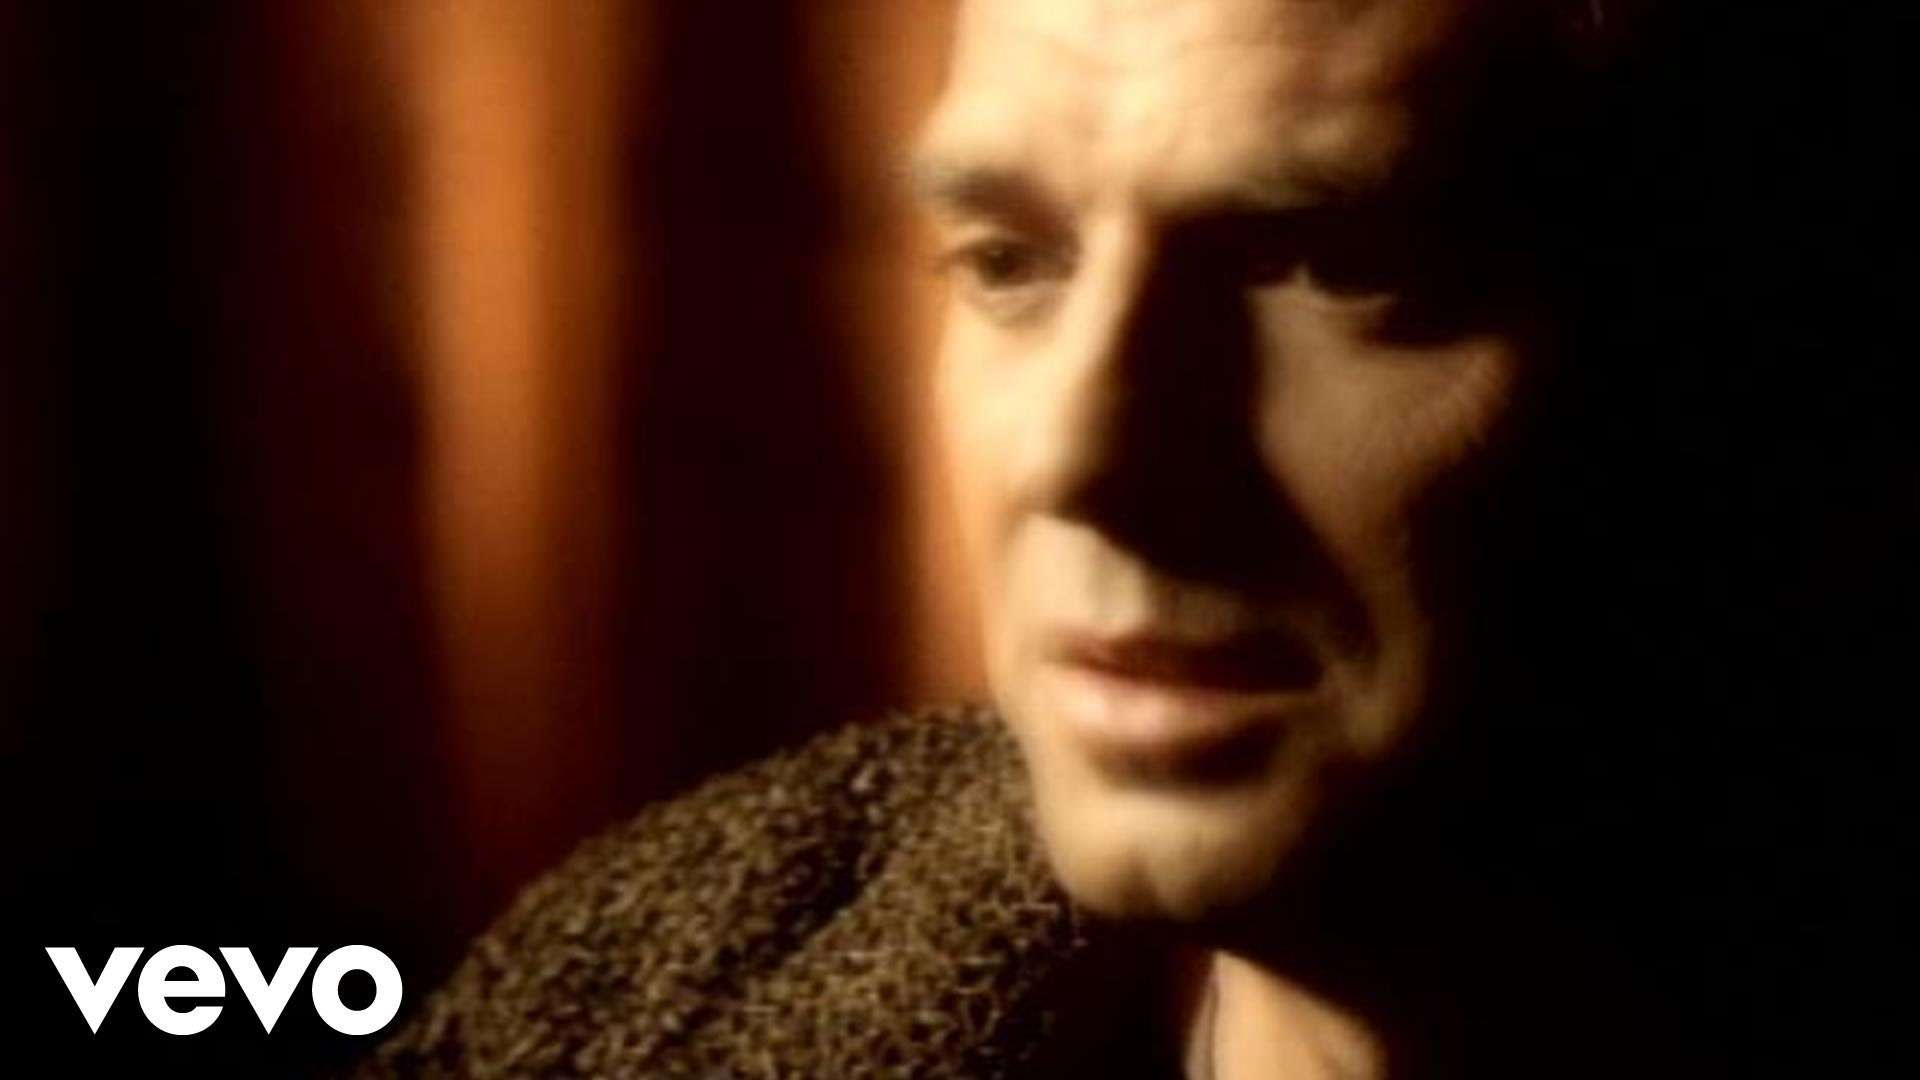 Kenny Loggins - For The First Time - YouTube